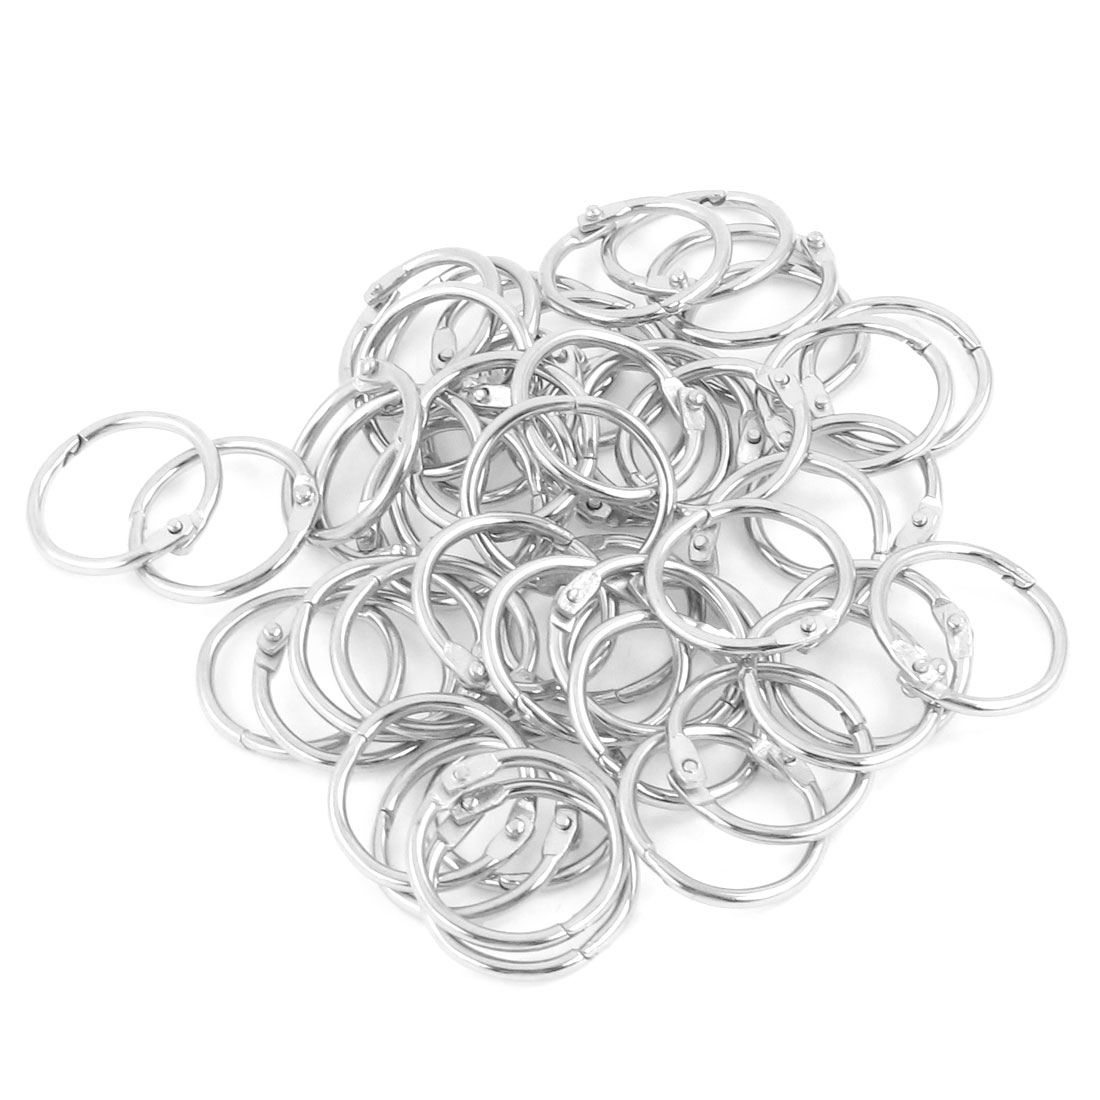 50 Pcs 25mm Diameter Silver Tone Metal Keyring Key Rings